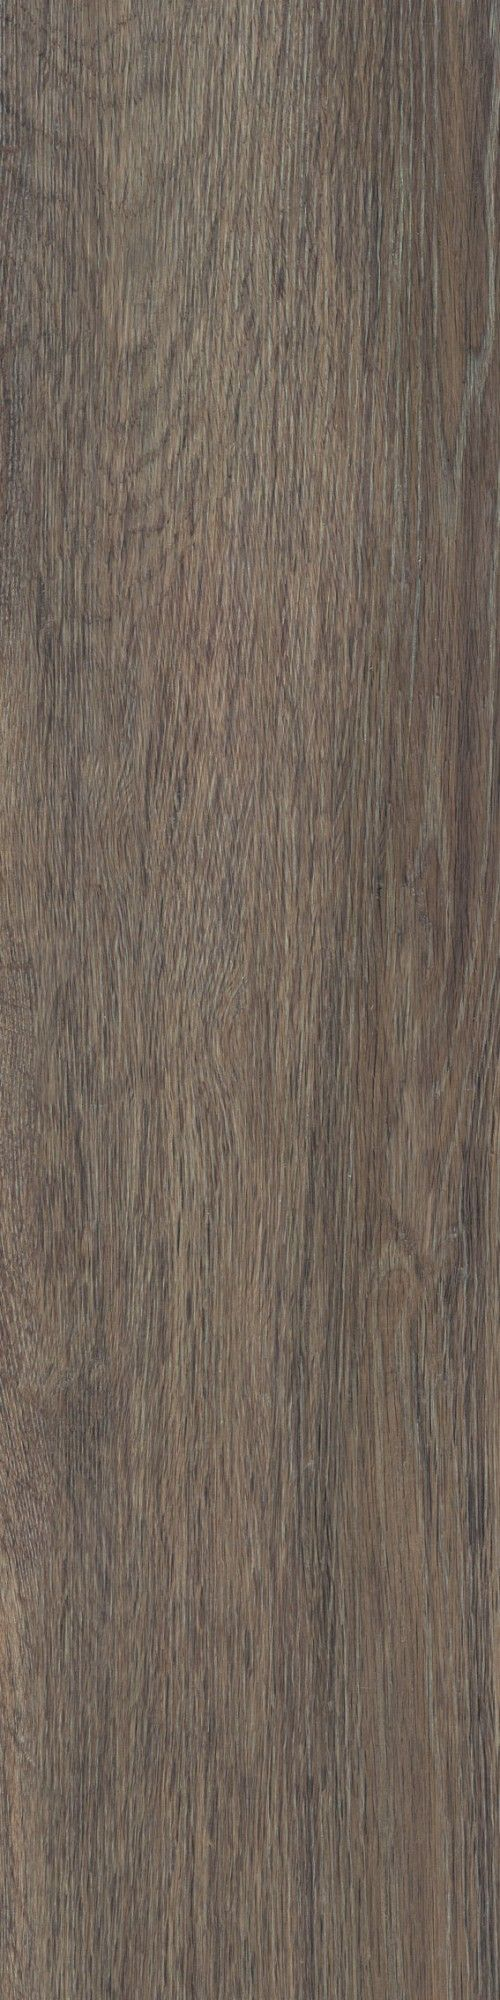 Best 25 wood grain tile ideas on pinterest porcelain wood tile campani legni vintage grey wood porcelain tile wood grain floor time for masculine guest bath dailygadgetfo Images